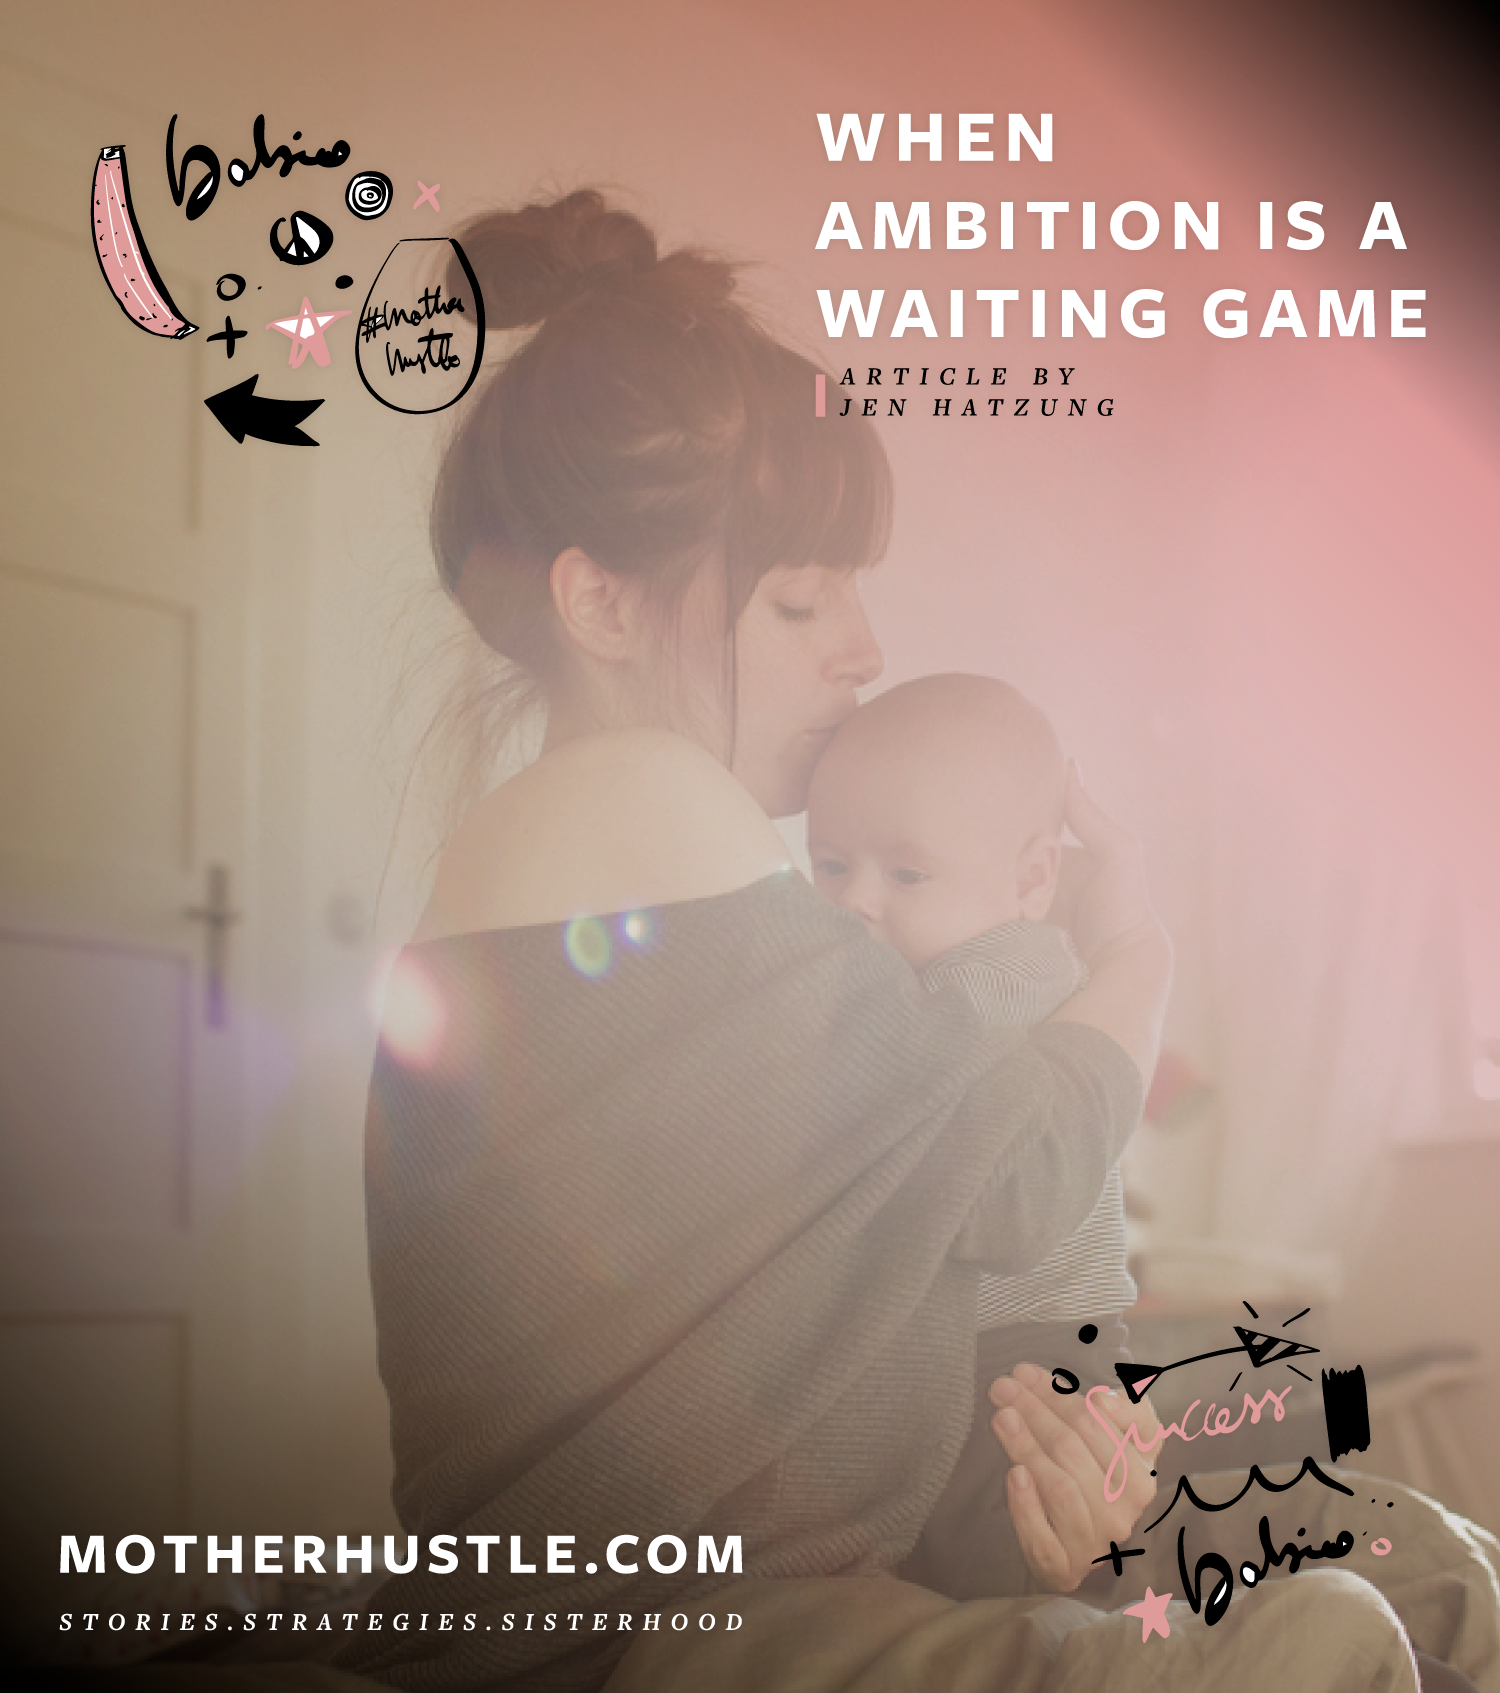 When-Ambition-Is-A-Waiting-Game by Jen Hatzung on MotherHustle